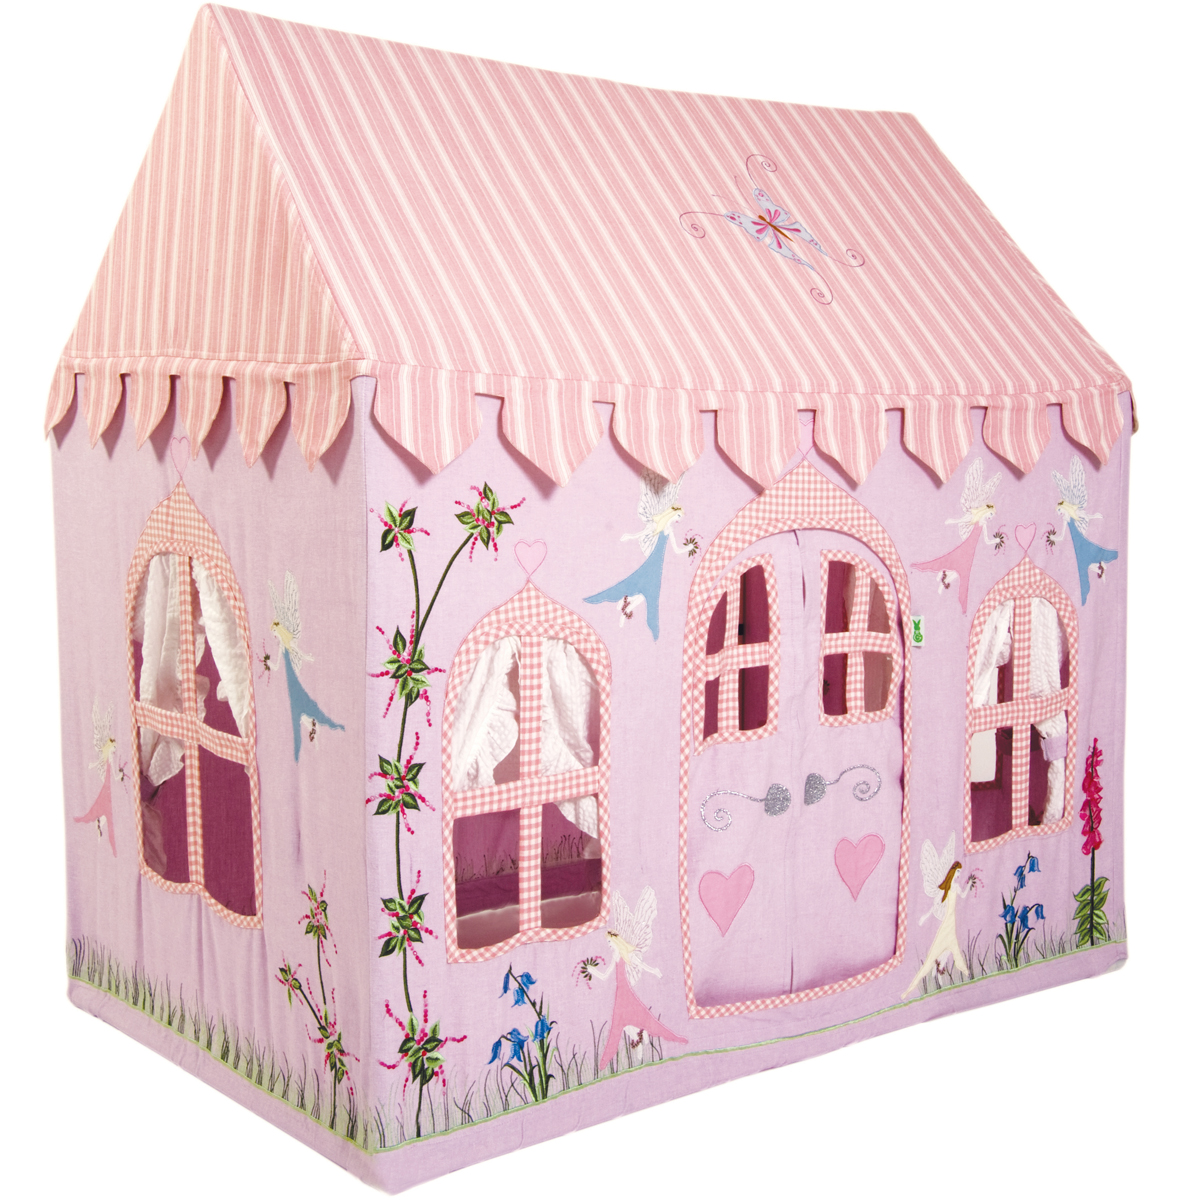 ... Fairyland Indoor Playhouse Thumbnail 2 ...  sc 1 st  Sweet Retreat Kids & Fairyland Indoor Playhouse